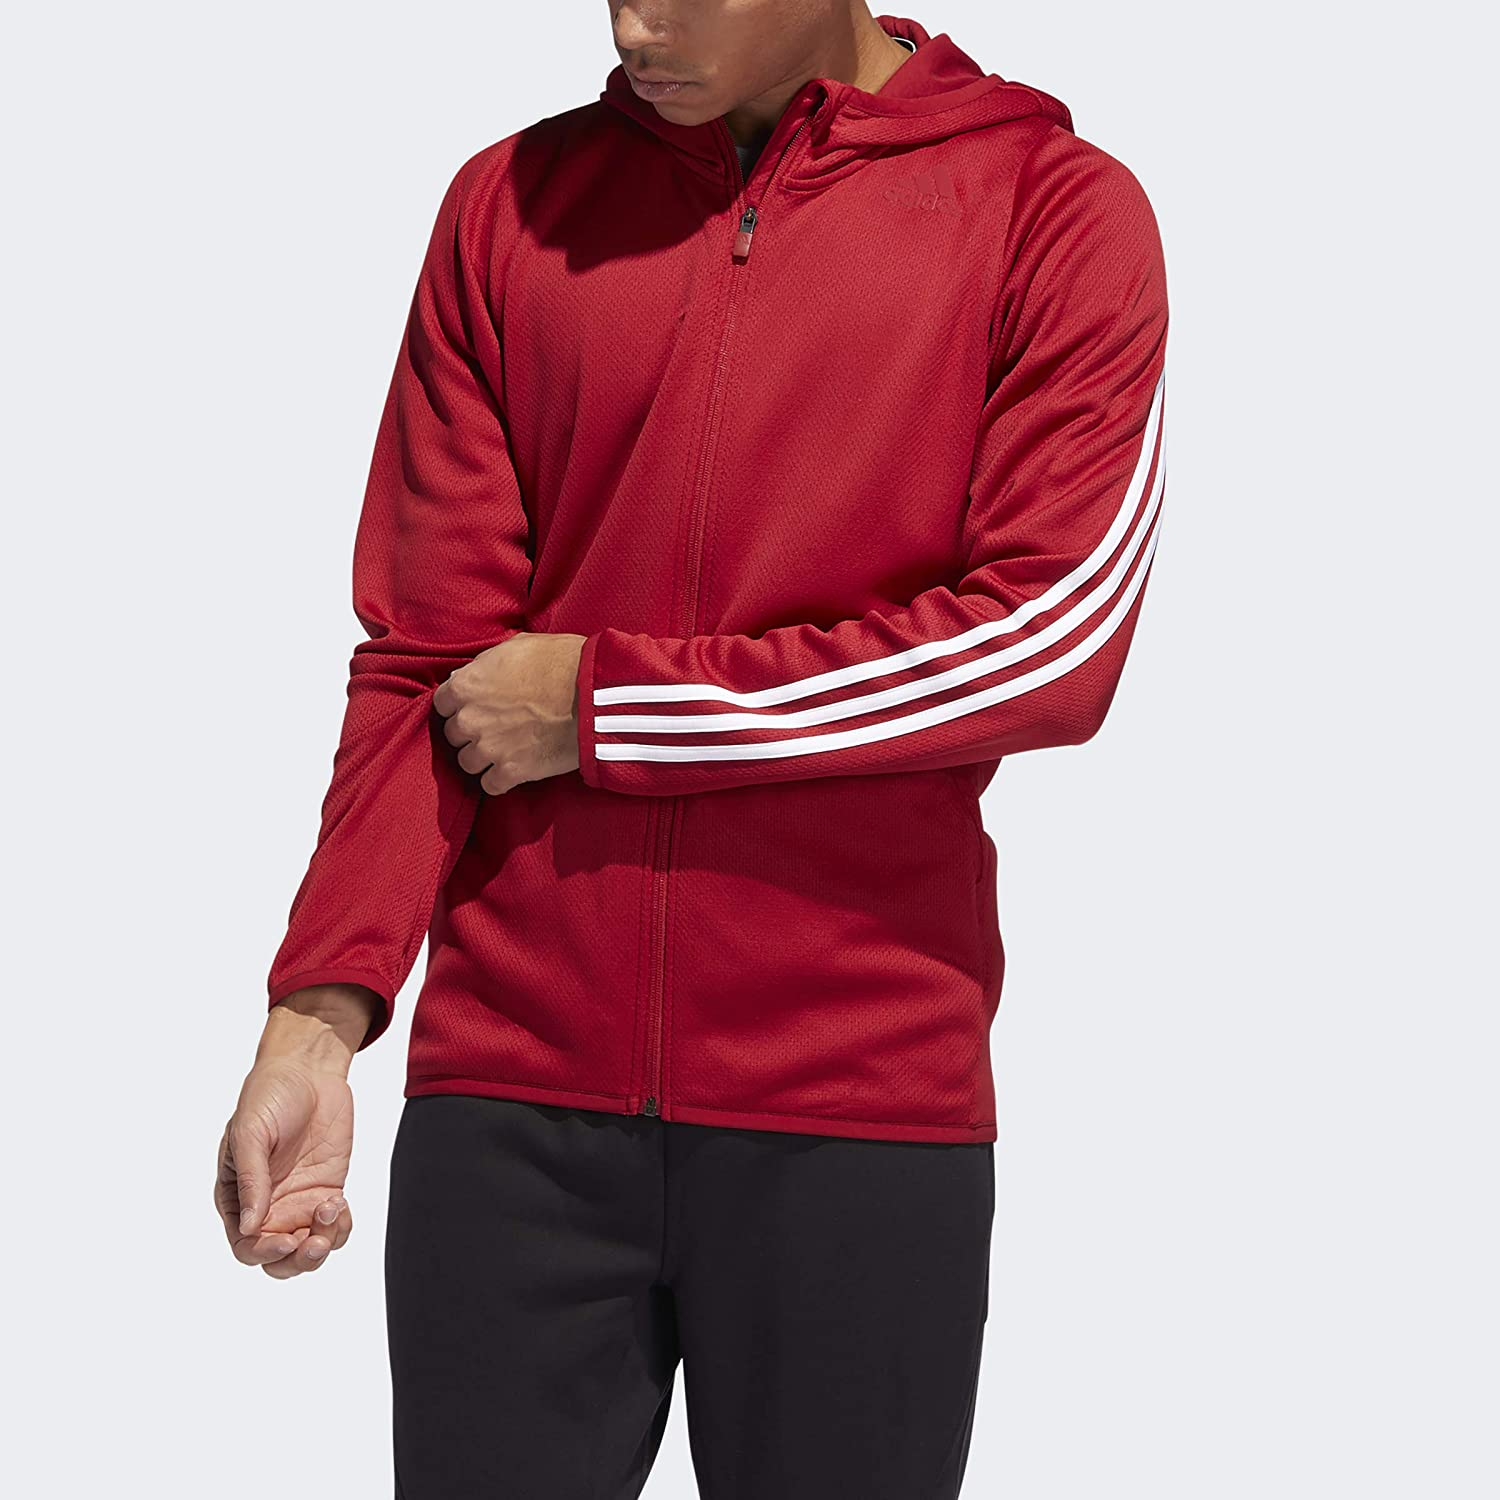 adidas Men's Daily 3-Stripes Hooded Sweatshirt